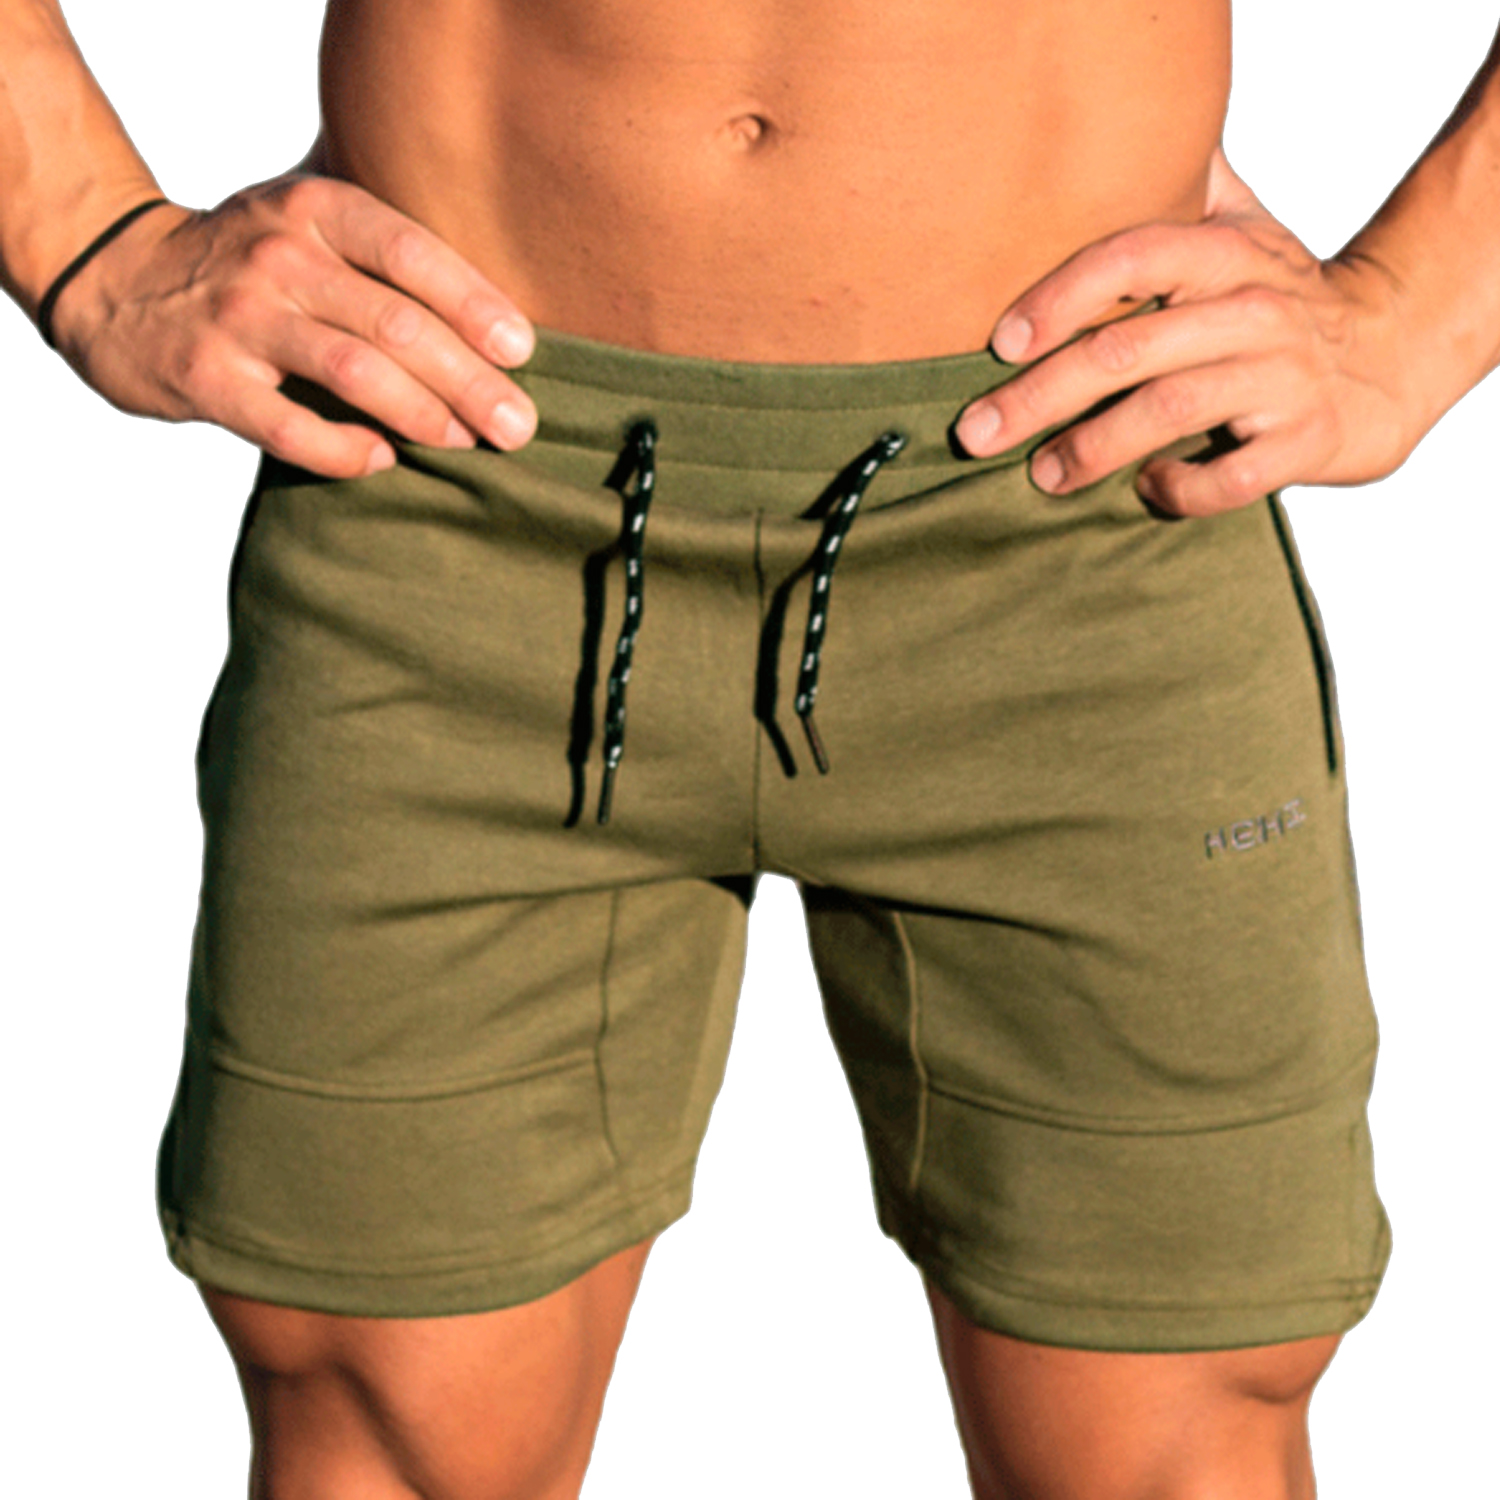 Shorts Mens 2018 Summer Fitness Solid Color Hot Cargo Men Beach Shorts Men Boardshorts MenS Short Casual Fitness FHTY